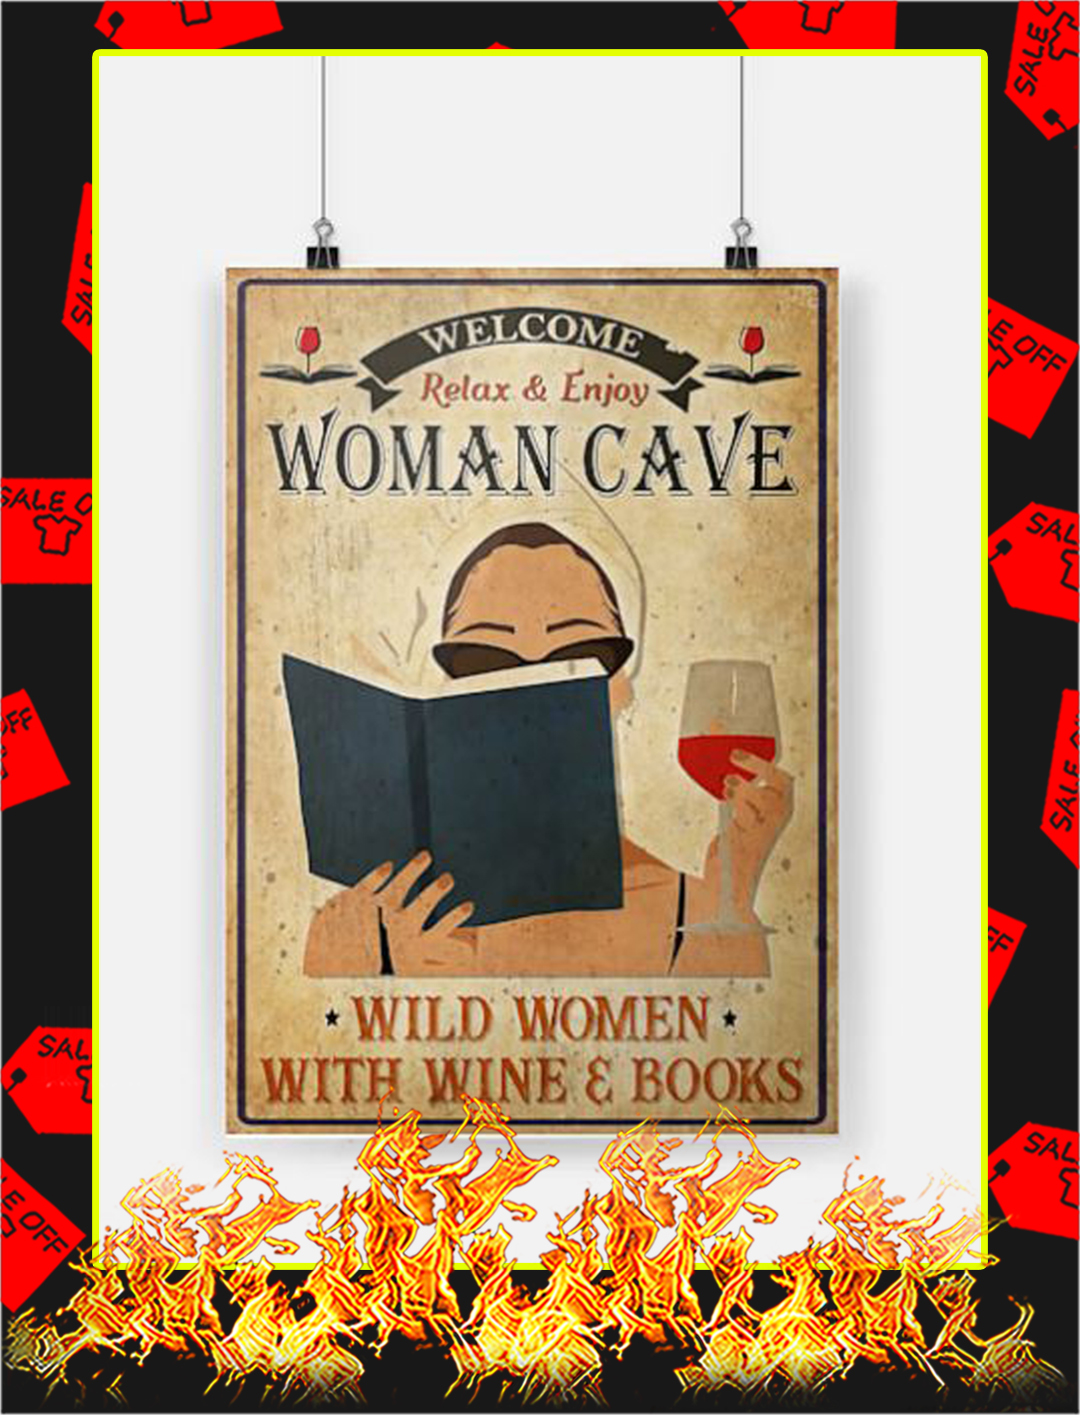 Wine and books welcome relax and enjoy woman cave poster - A2